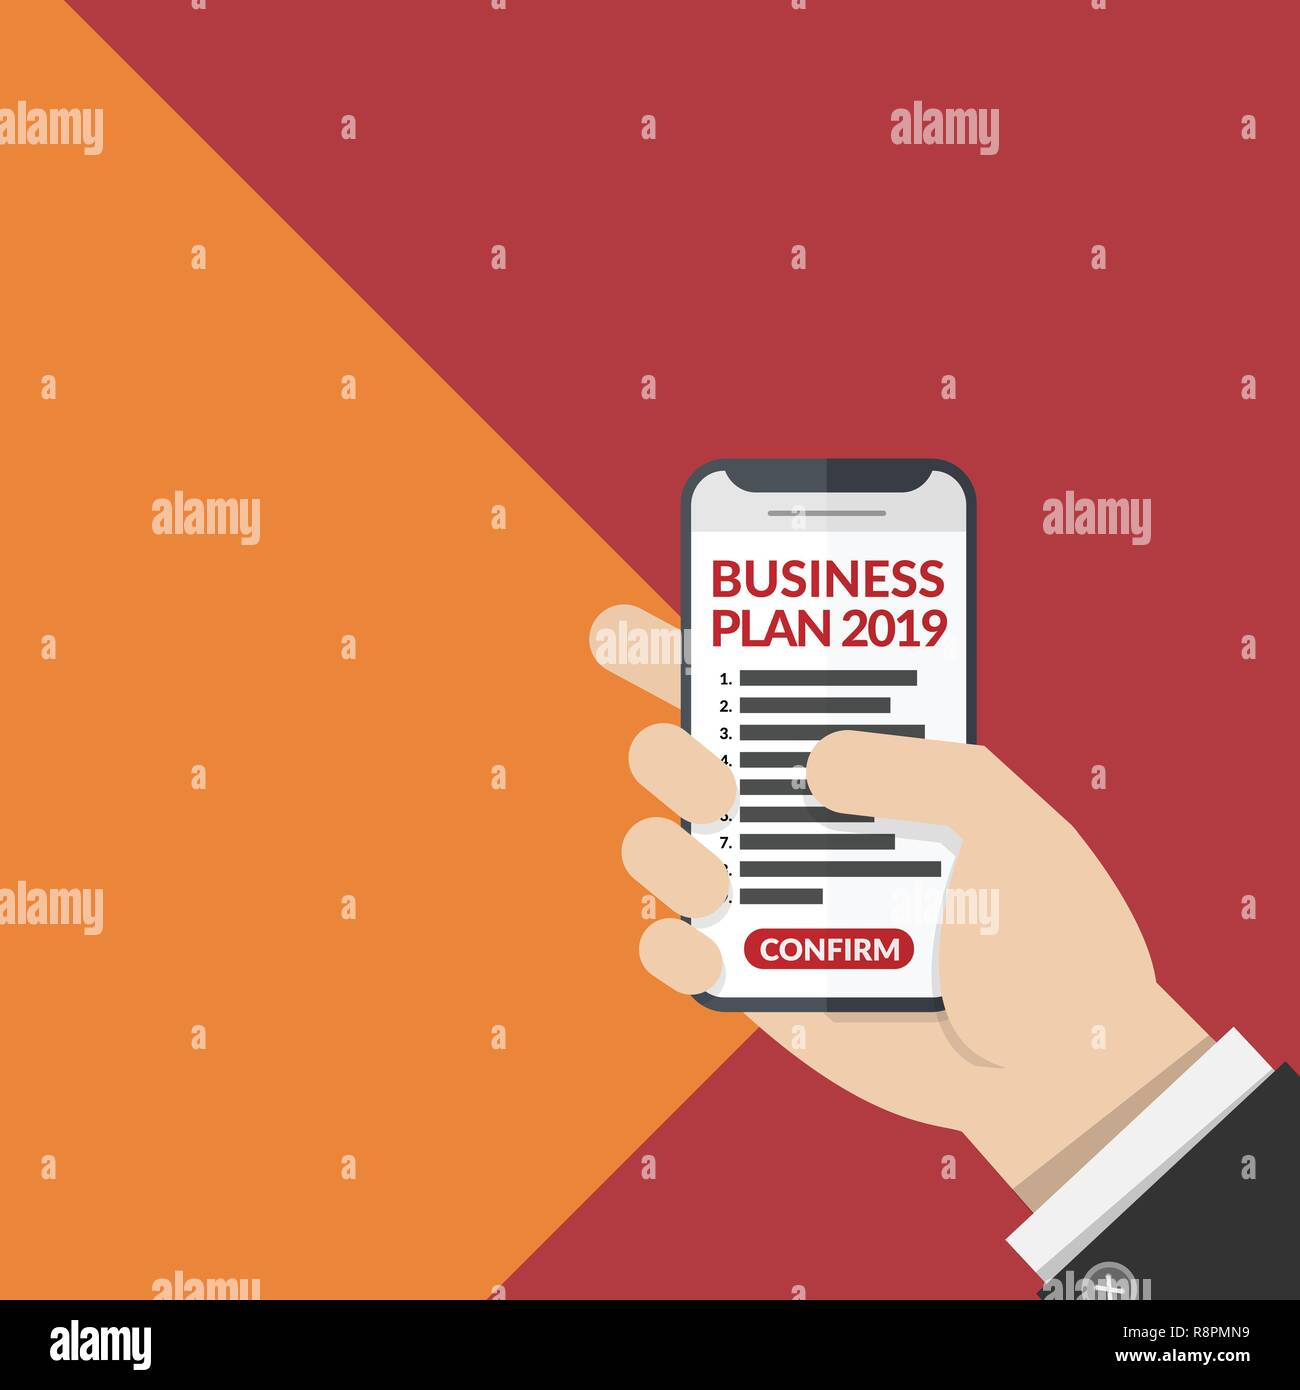 business plan list with number for year 2019 on mobile phone in business man's hand isolated on two tone background. vector illustration, flat design - Stock Image